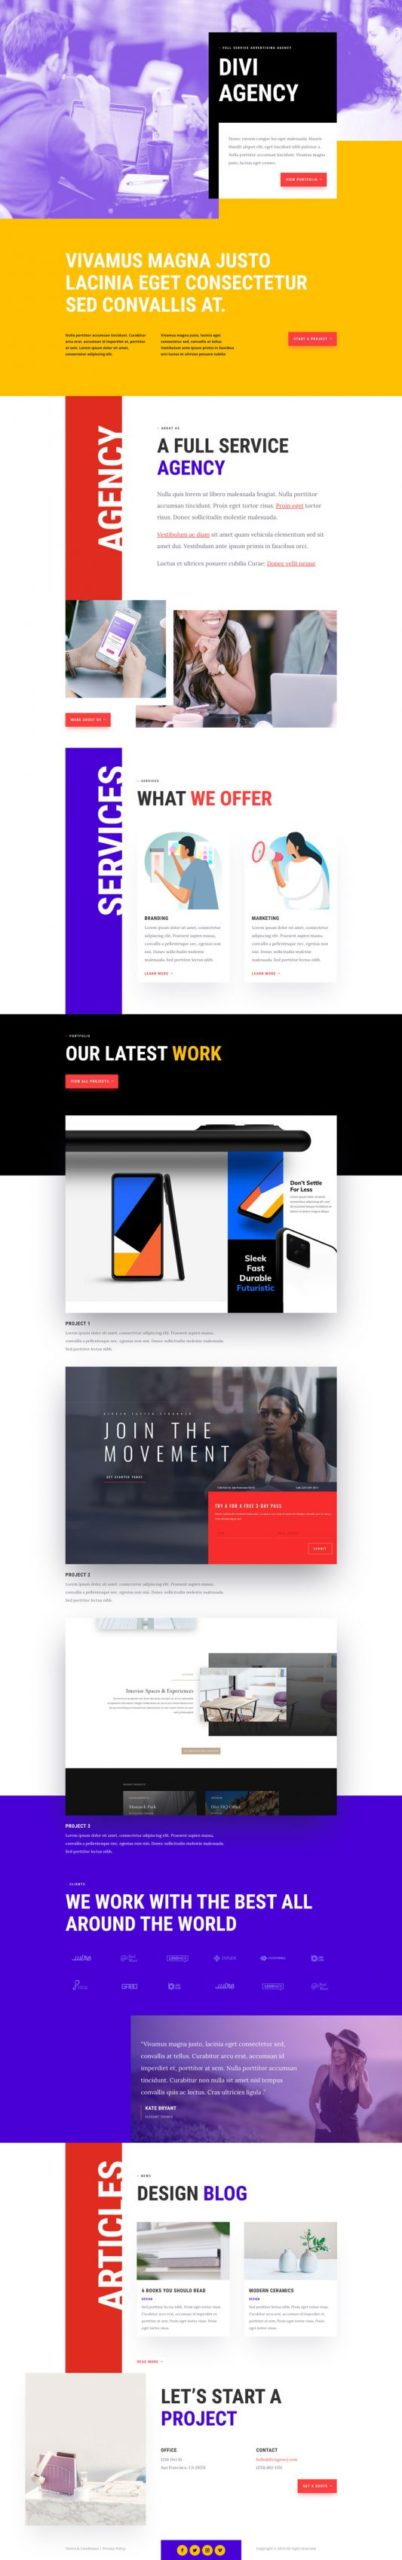 Advertising Agency Landing Page